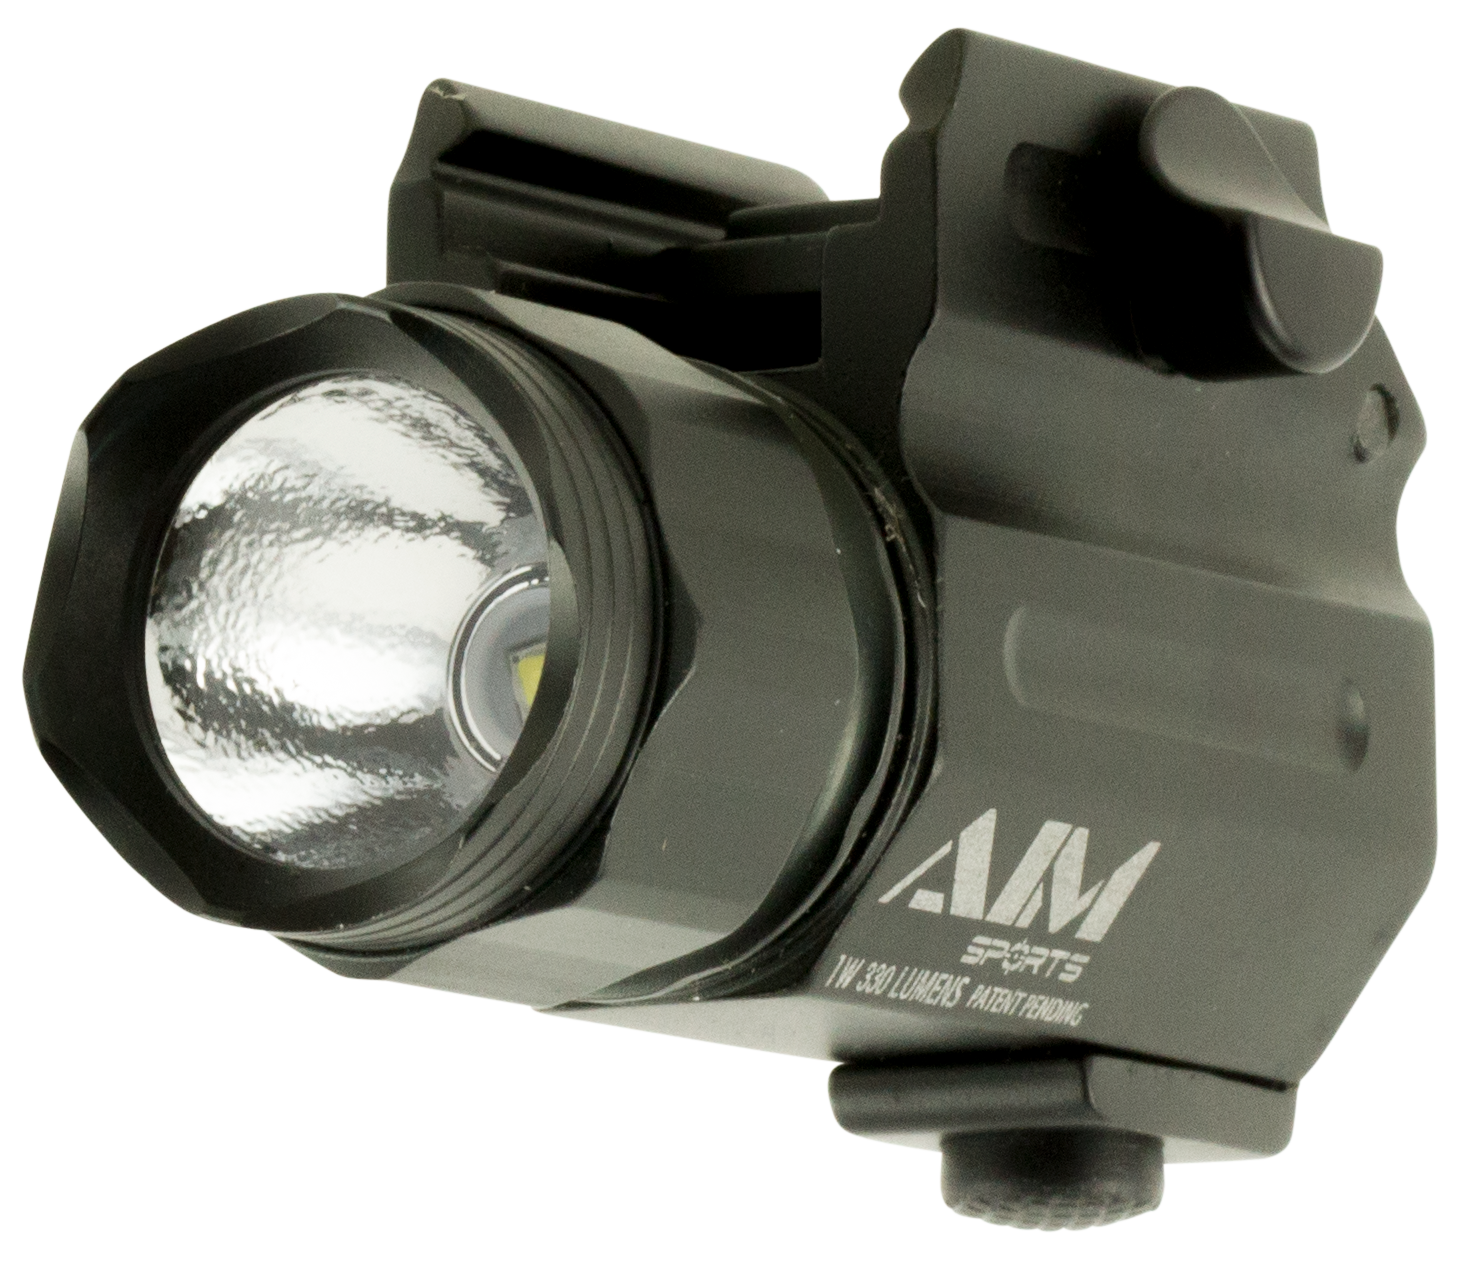 Aim Sports FQ330C Compact Flashlight 330 Lumens CR123 (2) Black